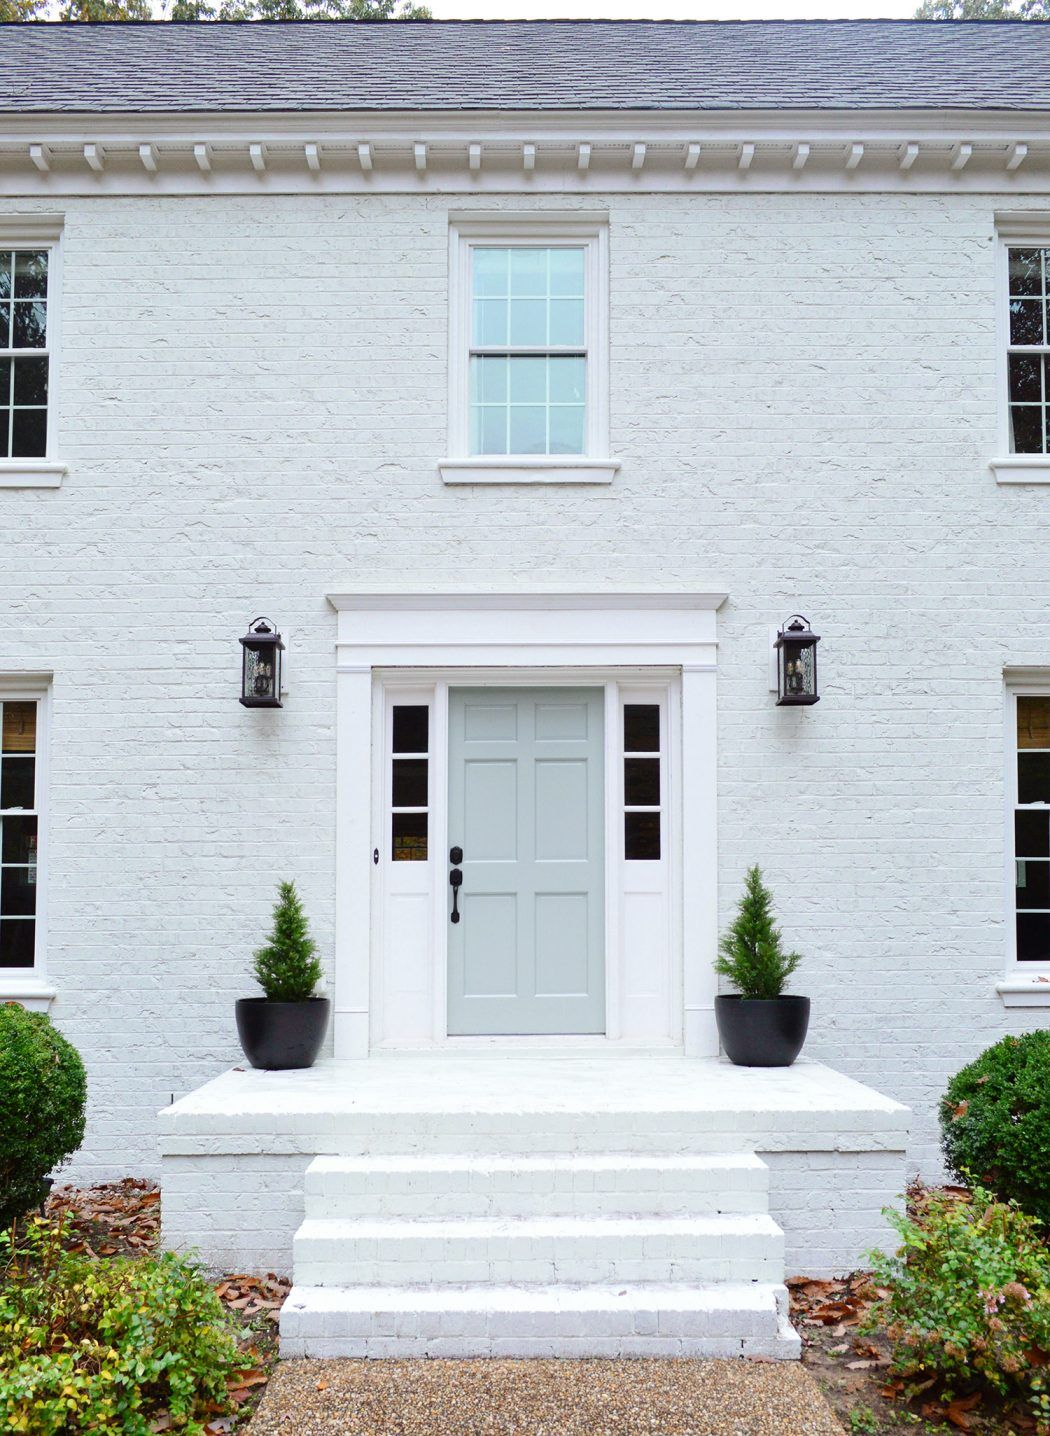 Bestes hausfrontdesign painting our brick house white  front porch  pinterest  house